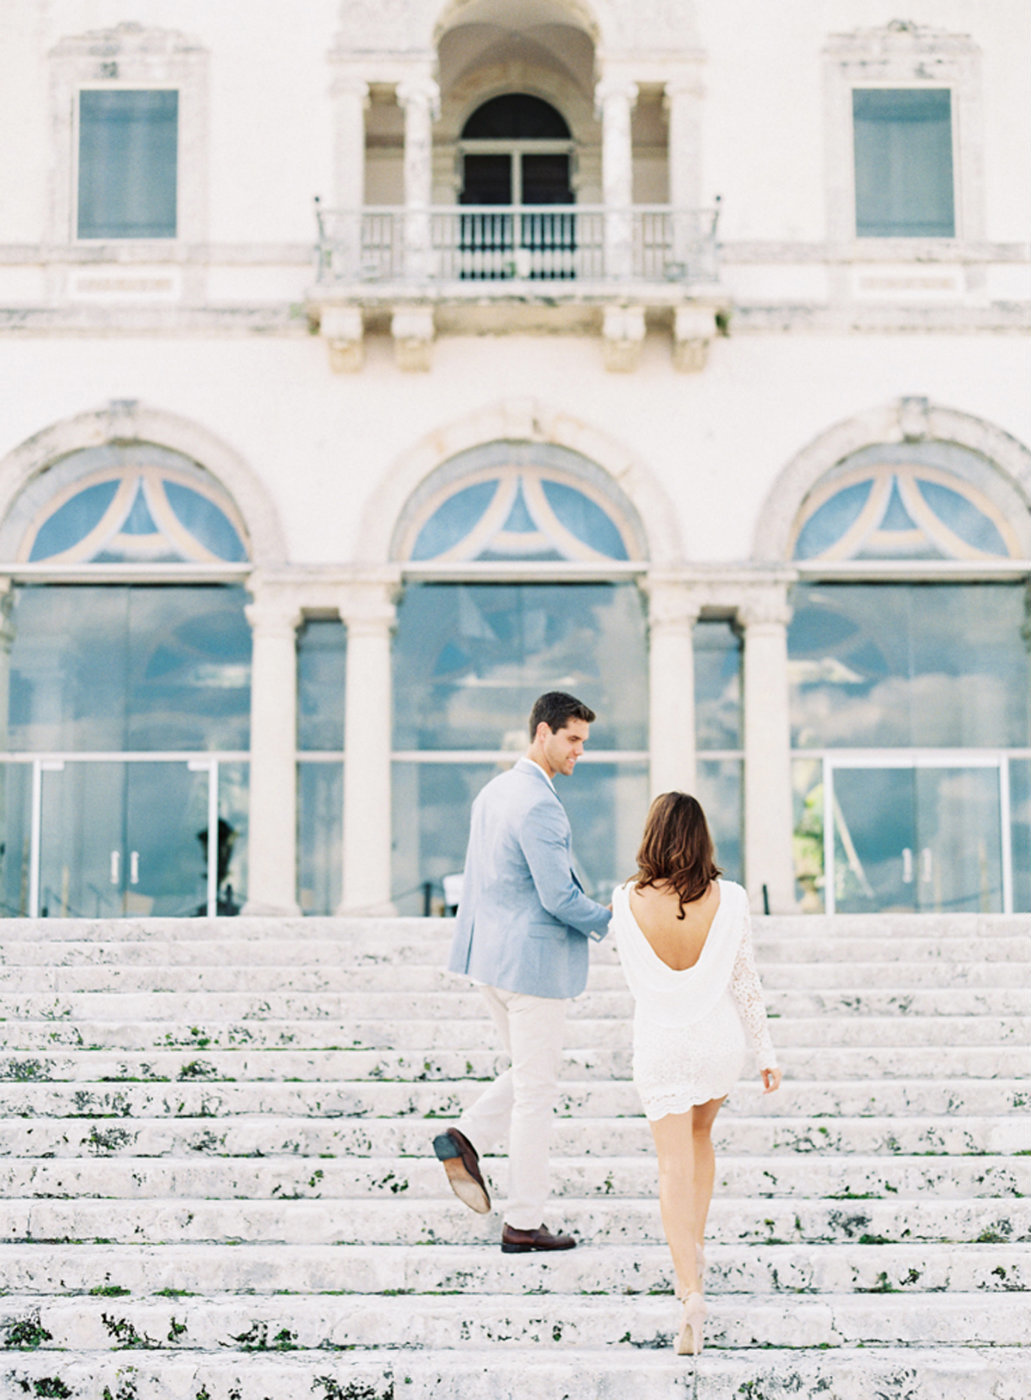 kayla_jon_vizcaya_sailboat_engagement_melanie_gabrielle_photography_23